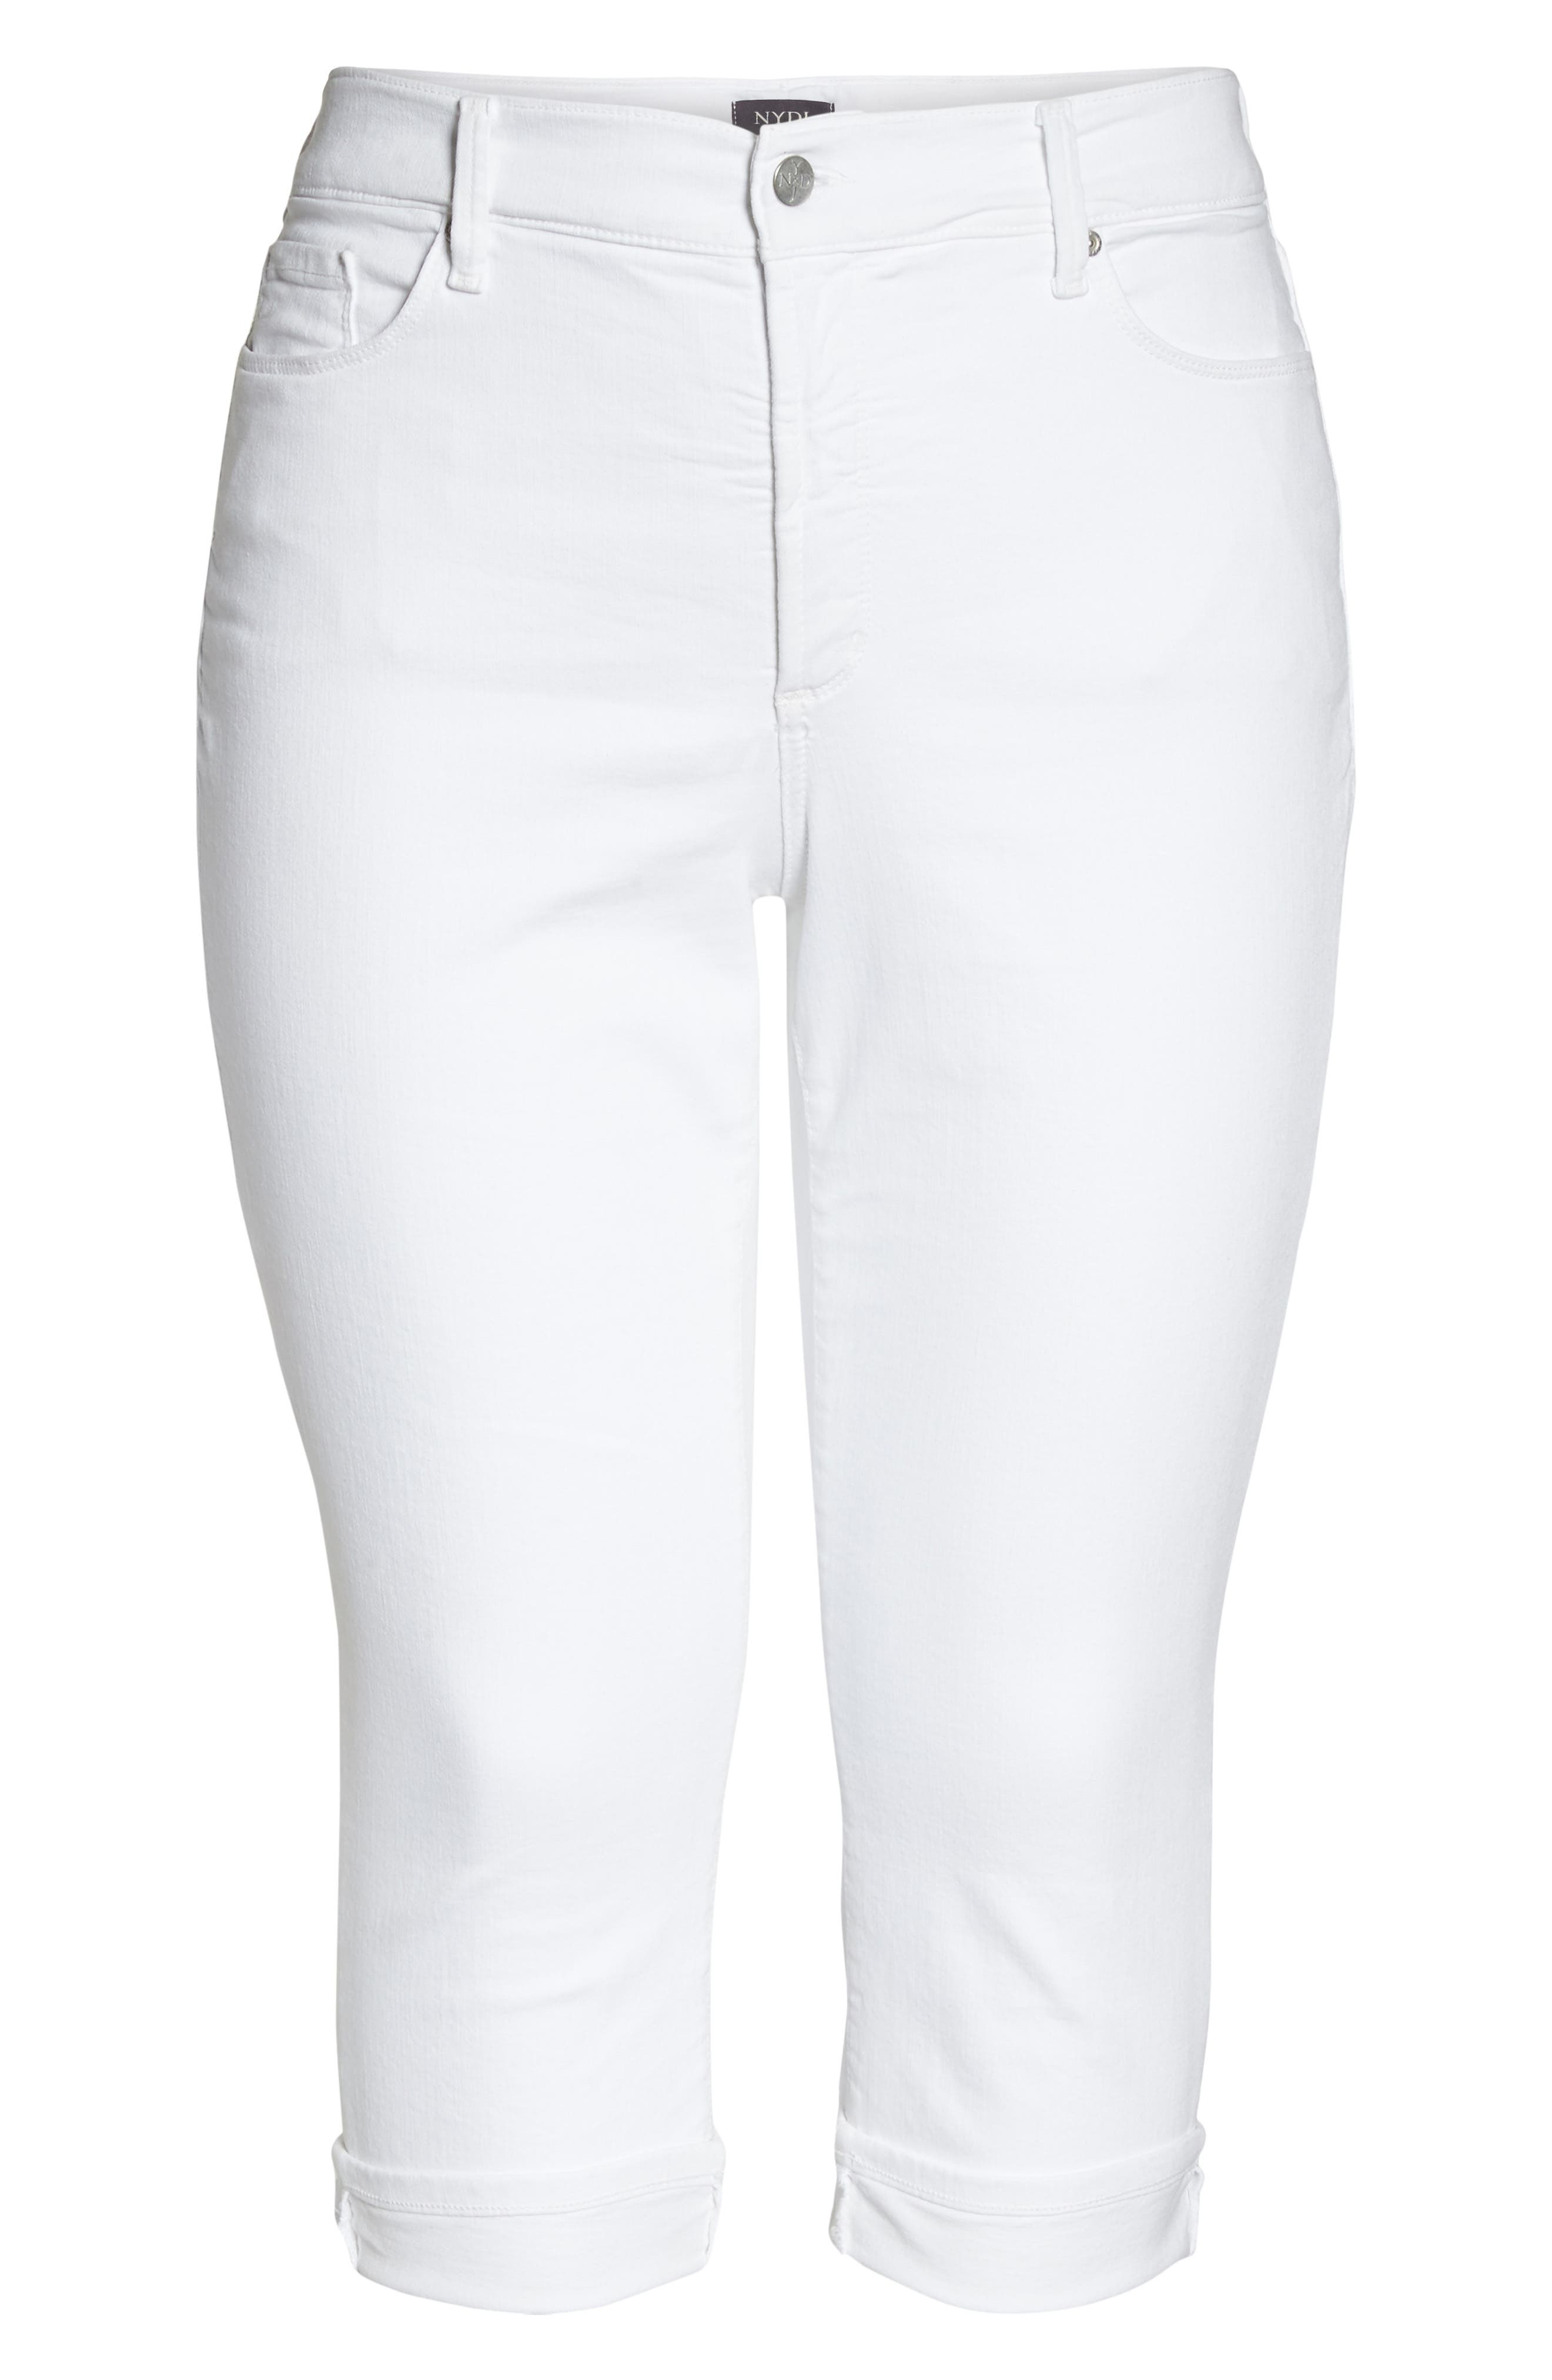 NYDJ, Marilyn Crop Cuff Jeans, Alternate thumbnail 7, color, WHITE